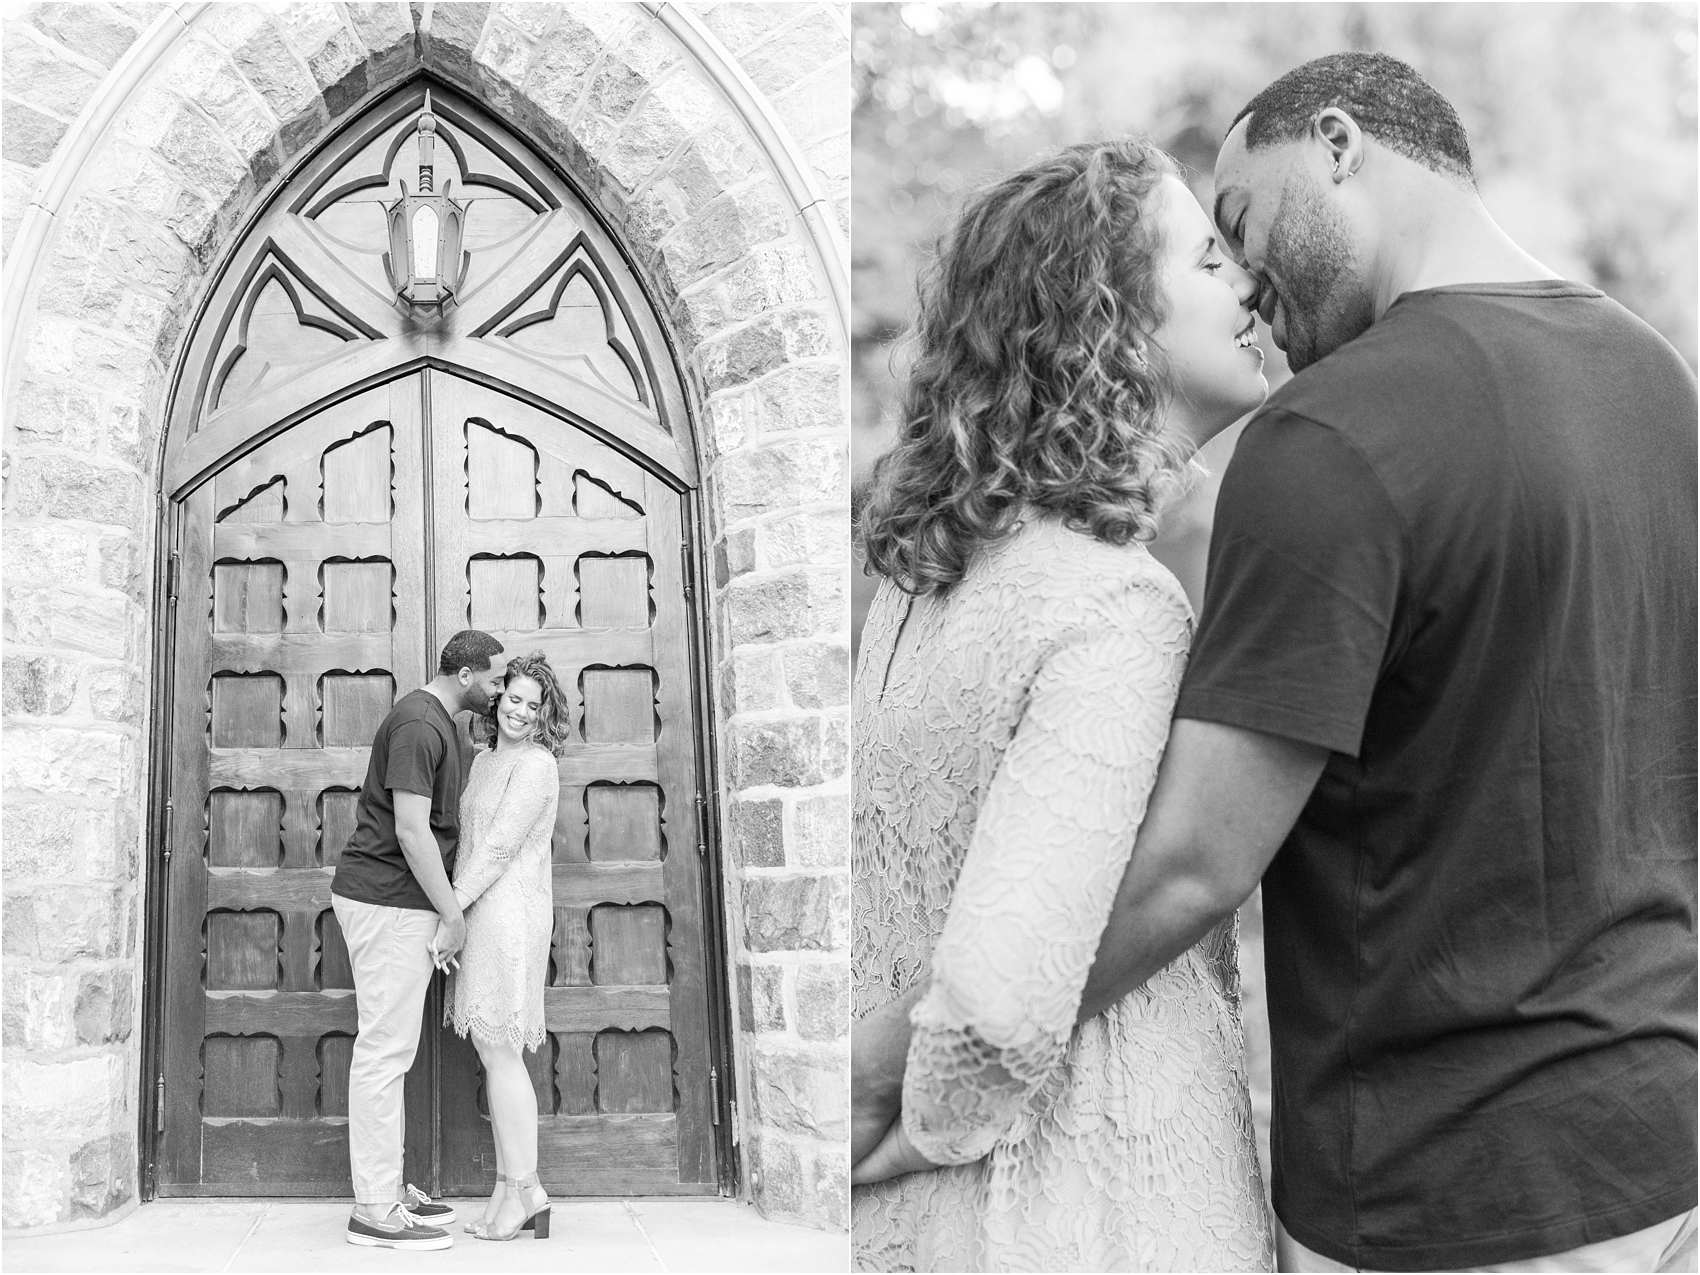 emotional-candid-romantic-engagement-photos-in-detroit-chicago-northern-michigan-by-courtney-carolyn-photography_0019.jpg